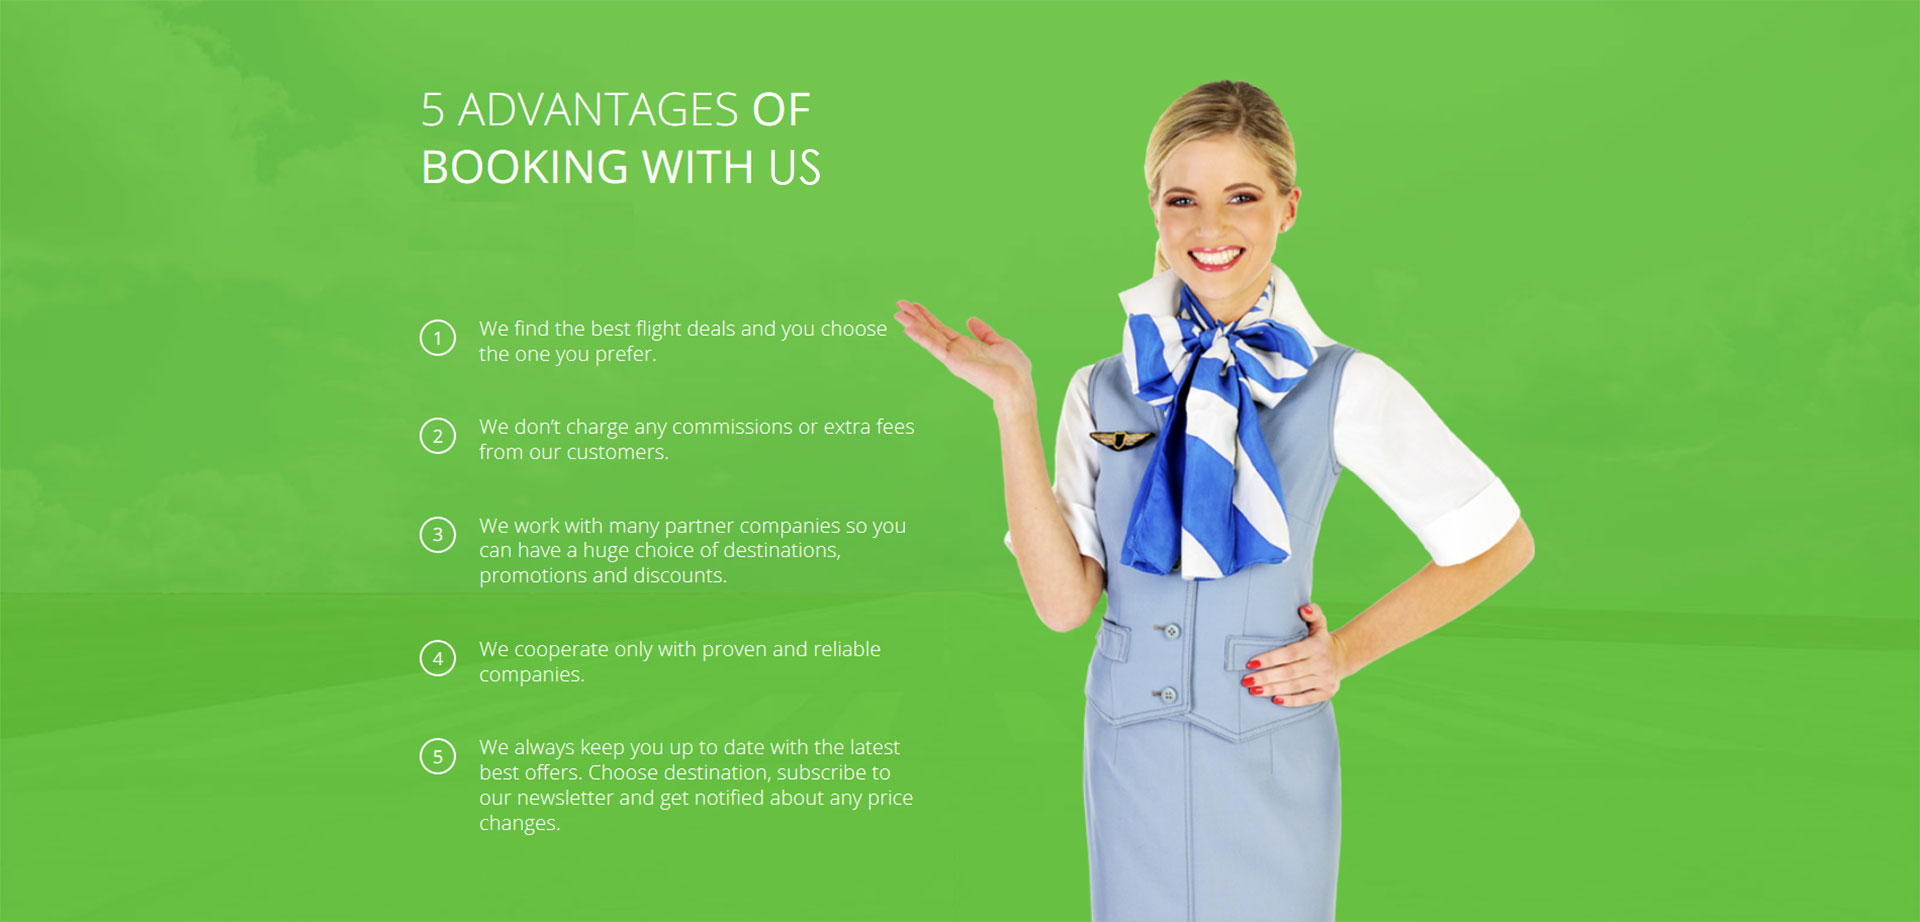 Advantages of Booking with Us